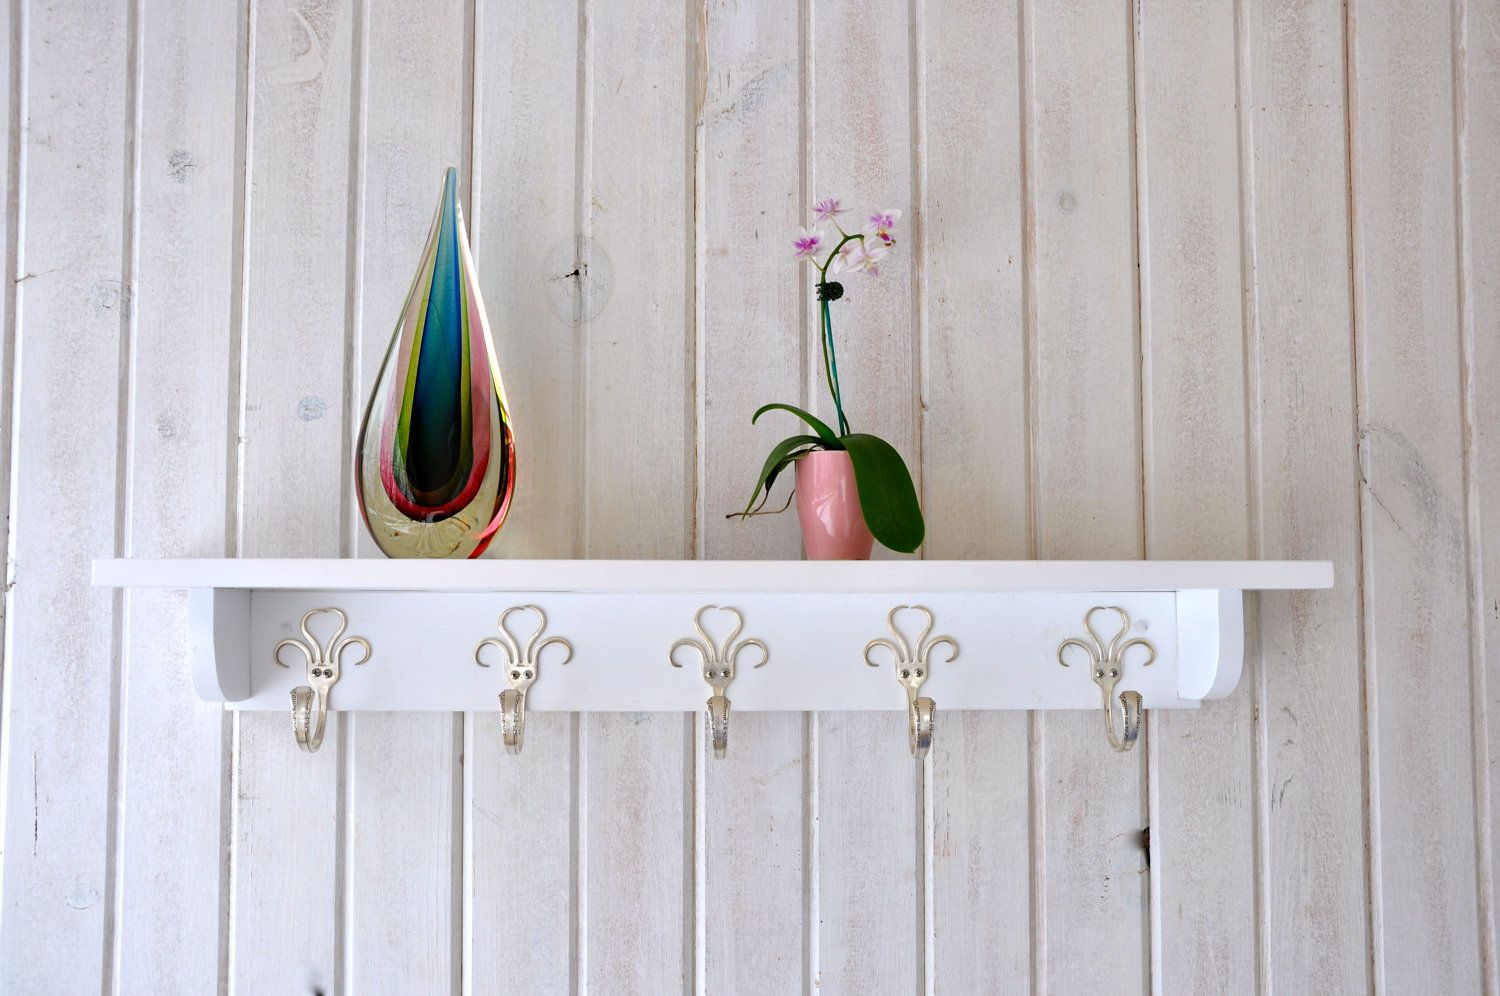 32 Inch Shelf W Five 003 Style Fork Hooks Vintage Recycled Silverware Recycled Silverware Wood Rack Painted Bookshelves